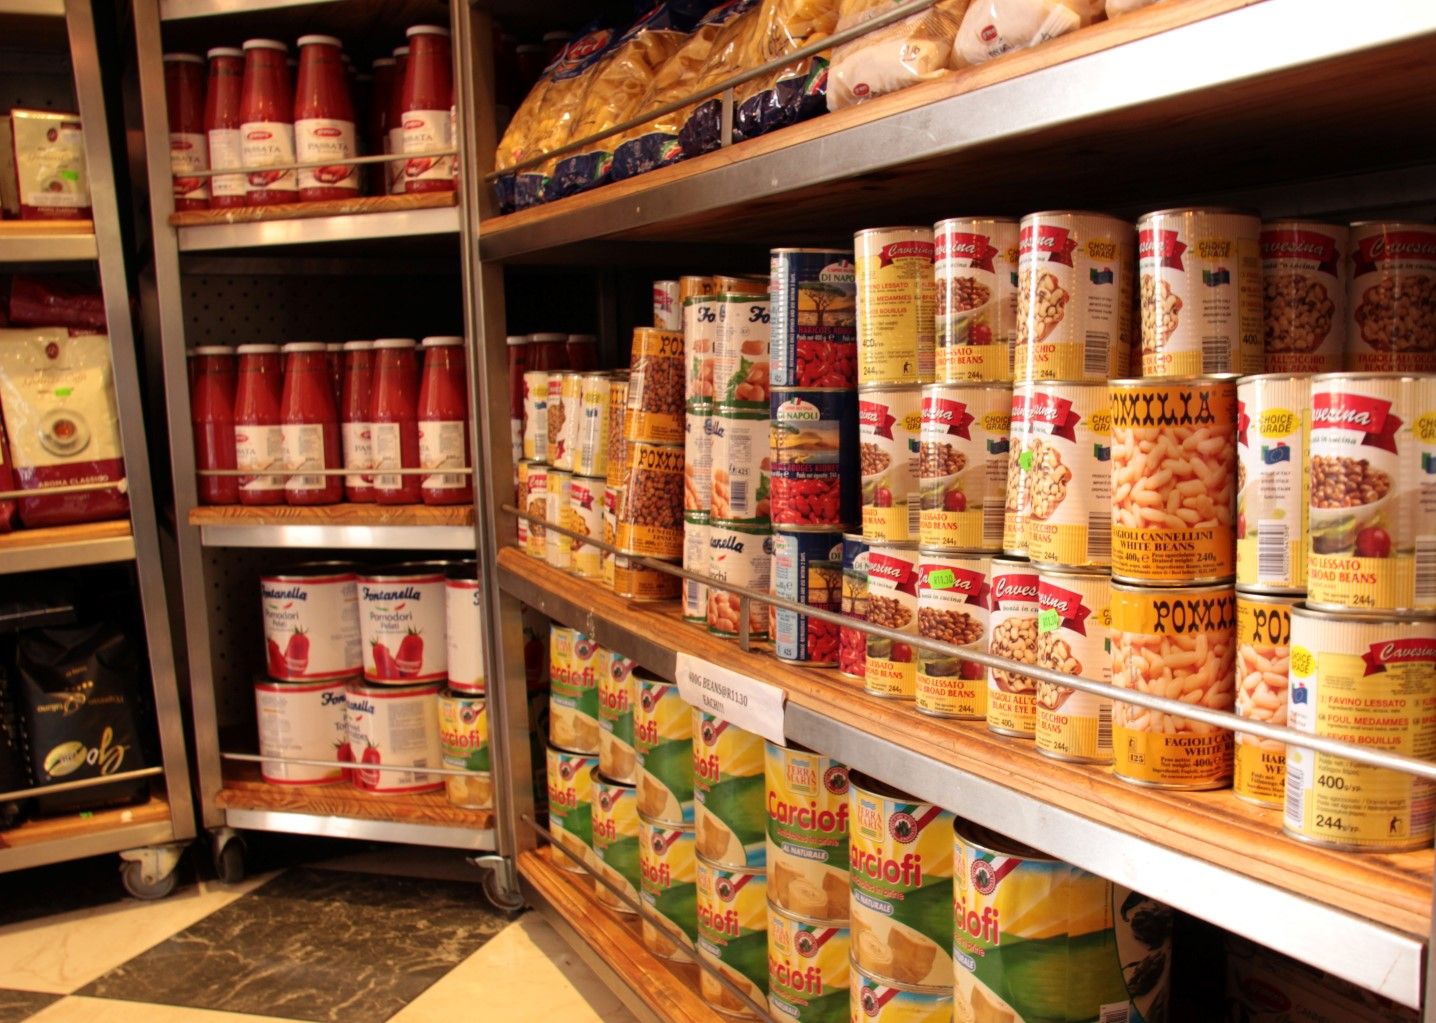 Tinned beans and tomatoes at Cremalat